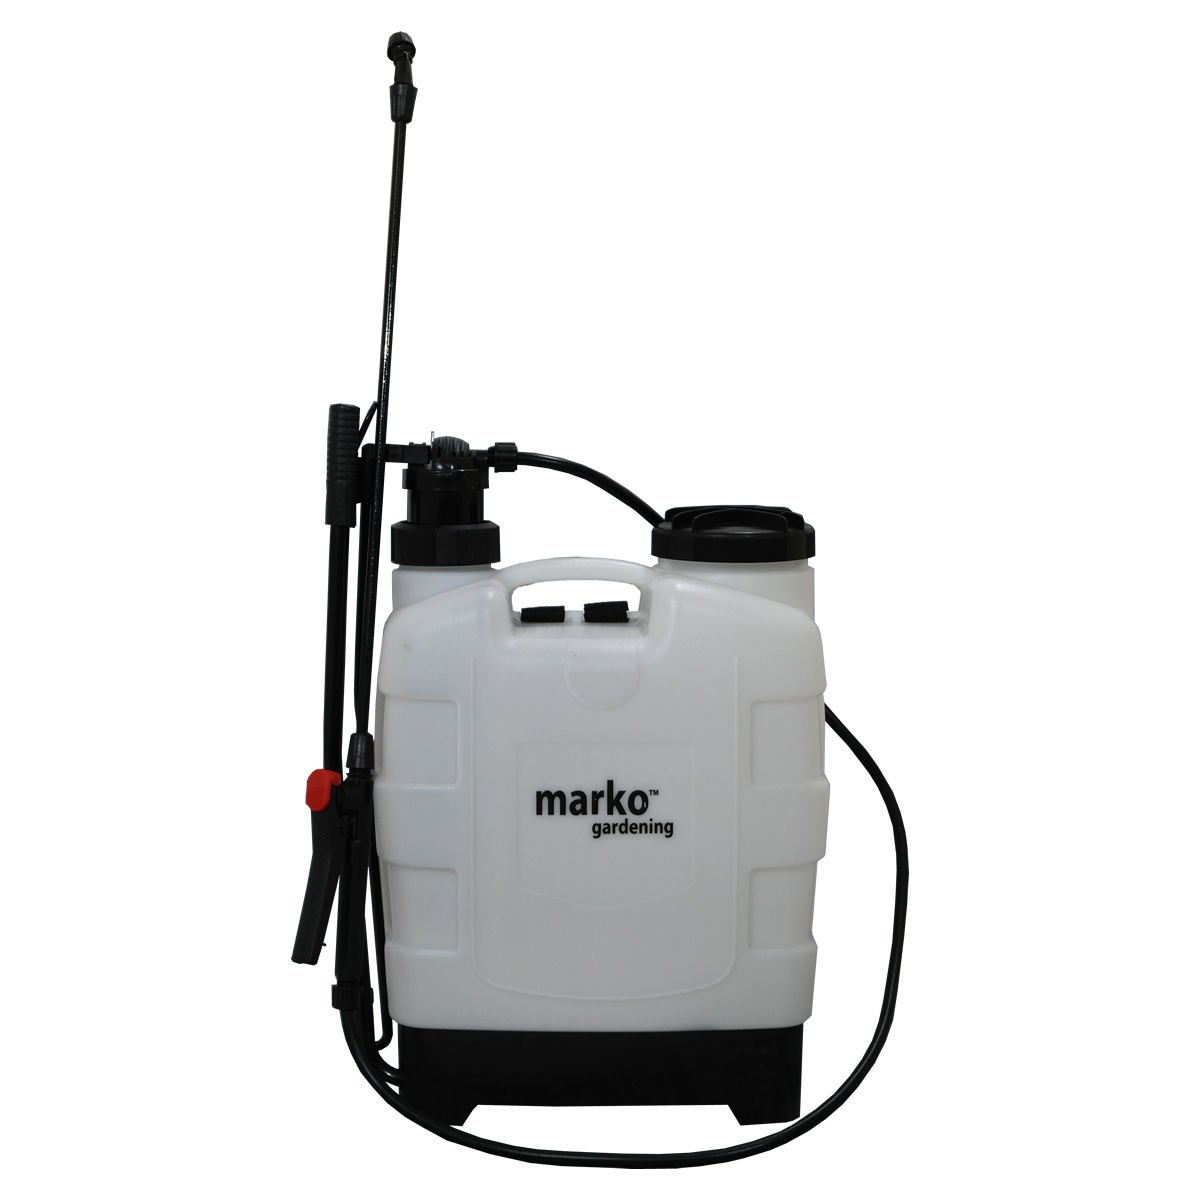 20L Litre Backpack Knapsack Pressure Sprayer Crop Garden Weed Killer Chemicals